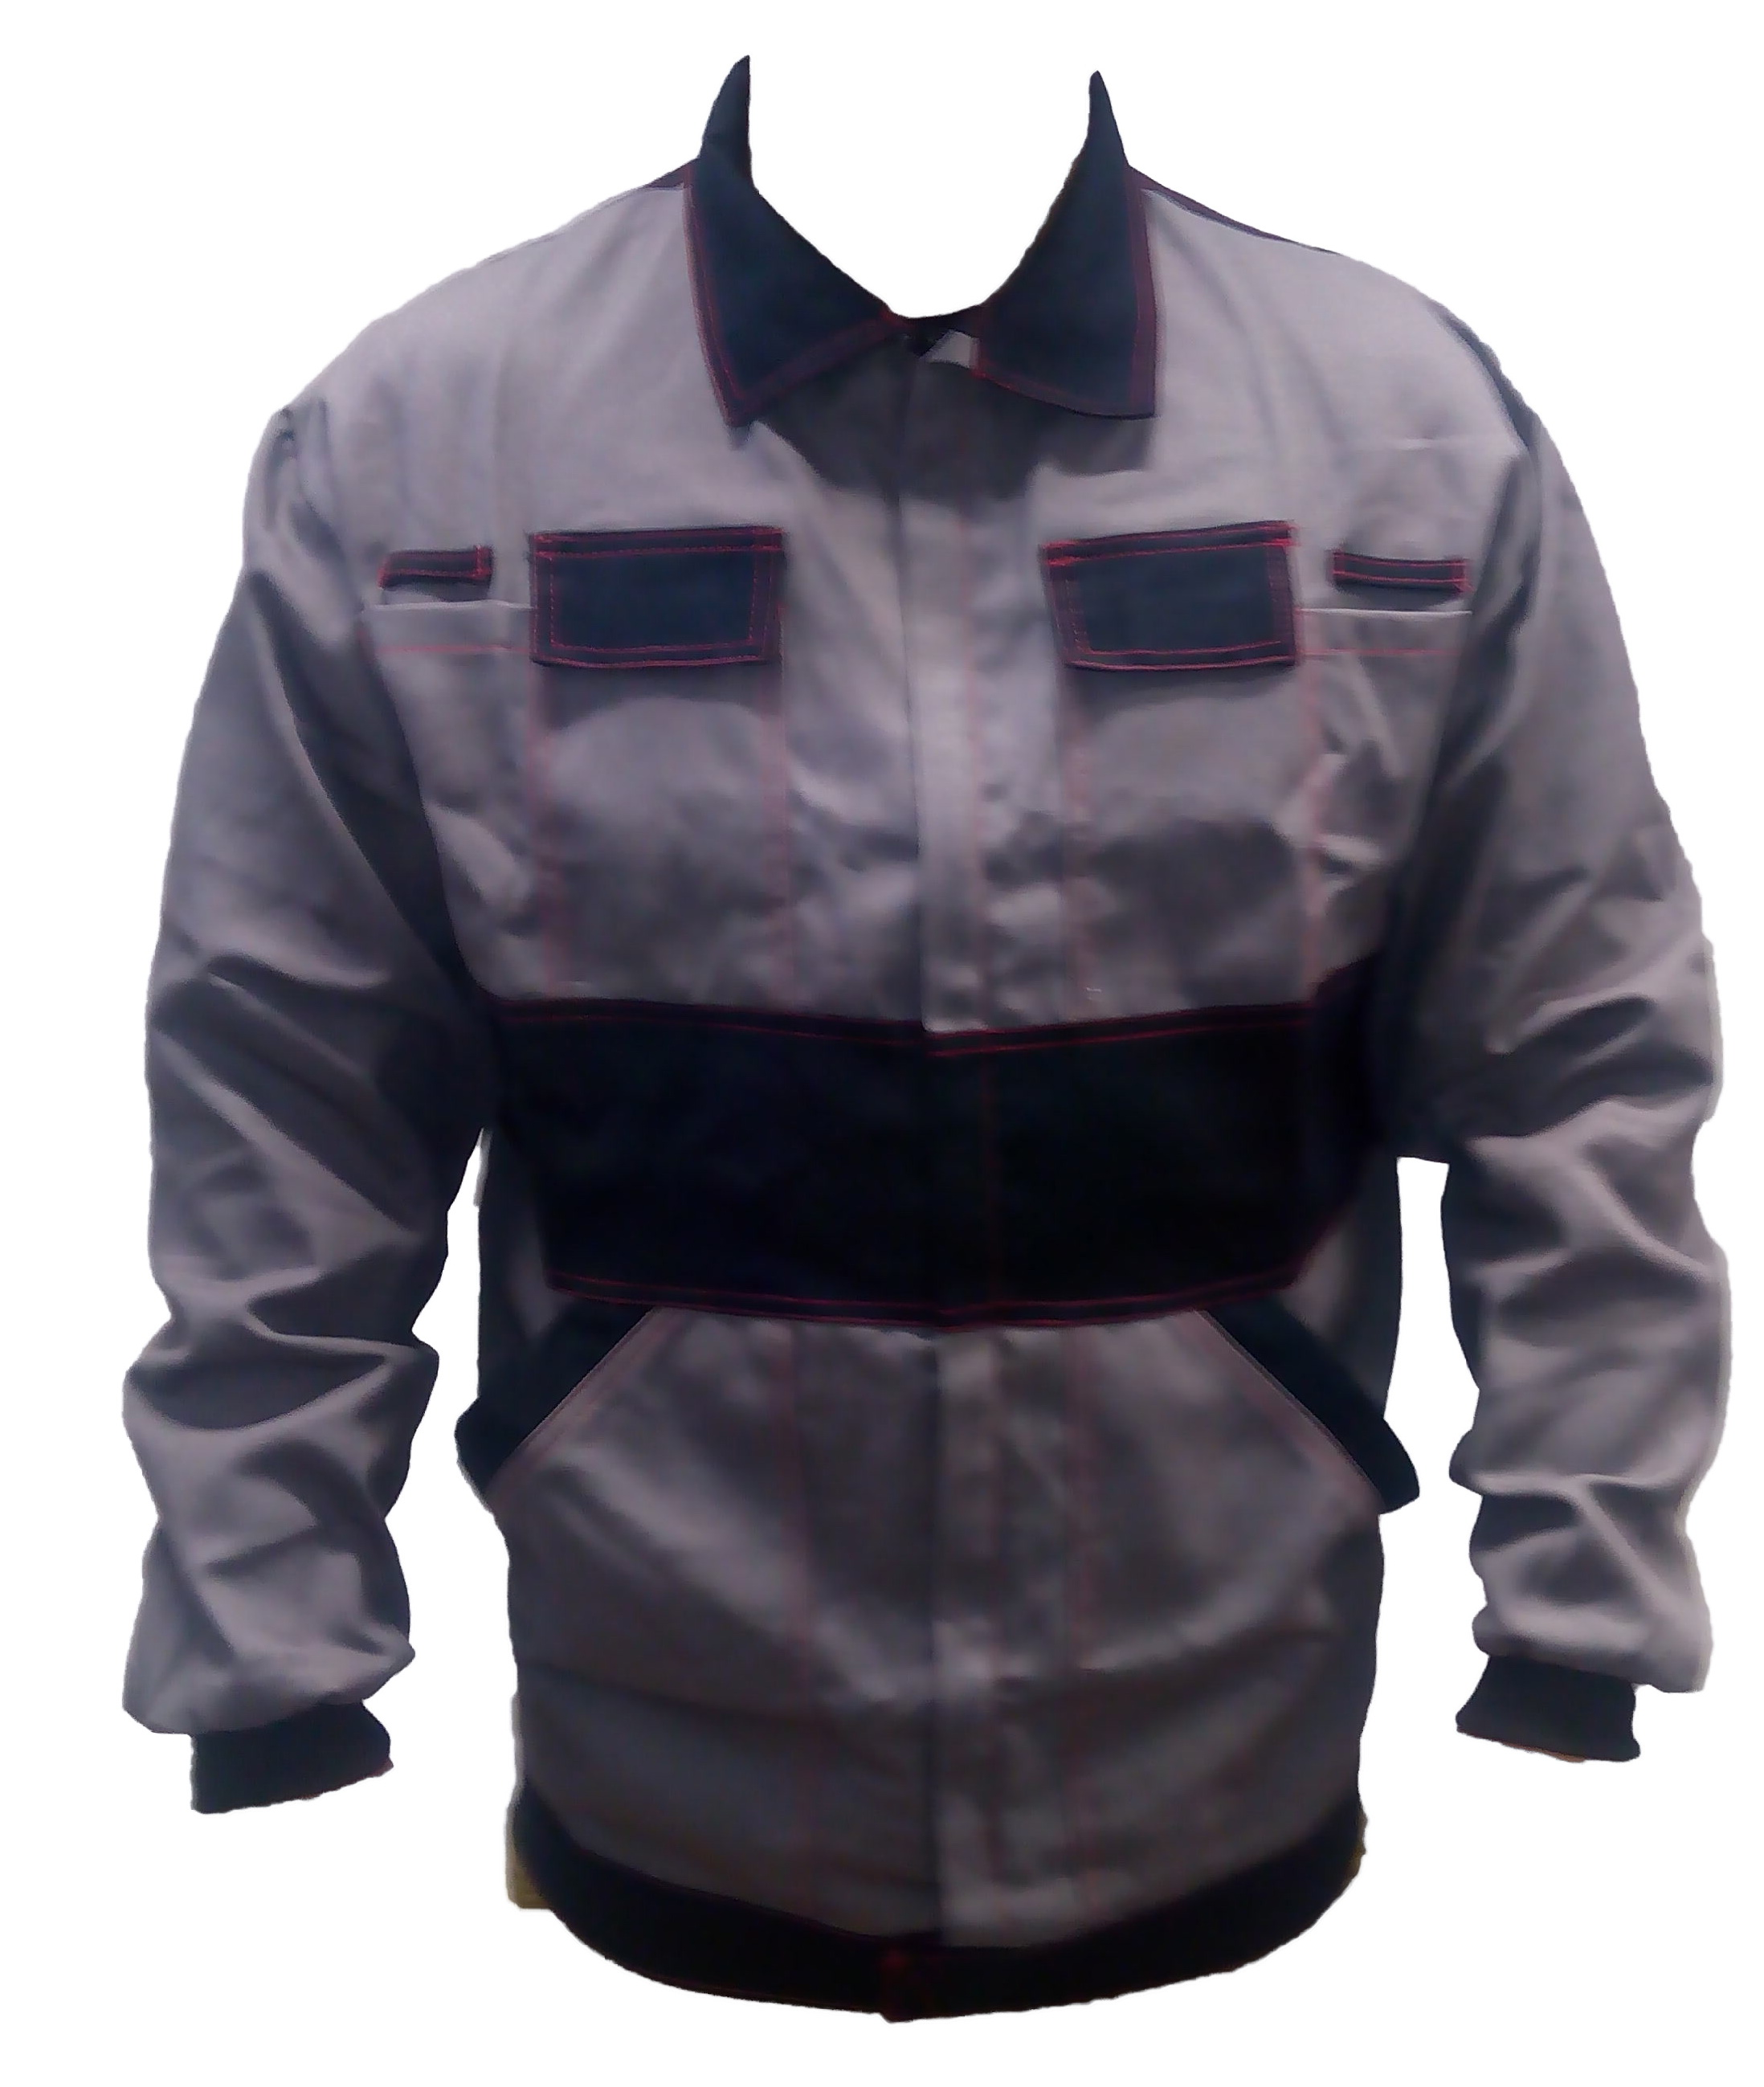 Prime DEX 101-927 Grey - Black Jacket